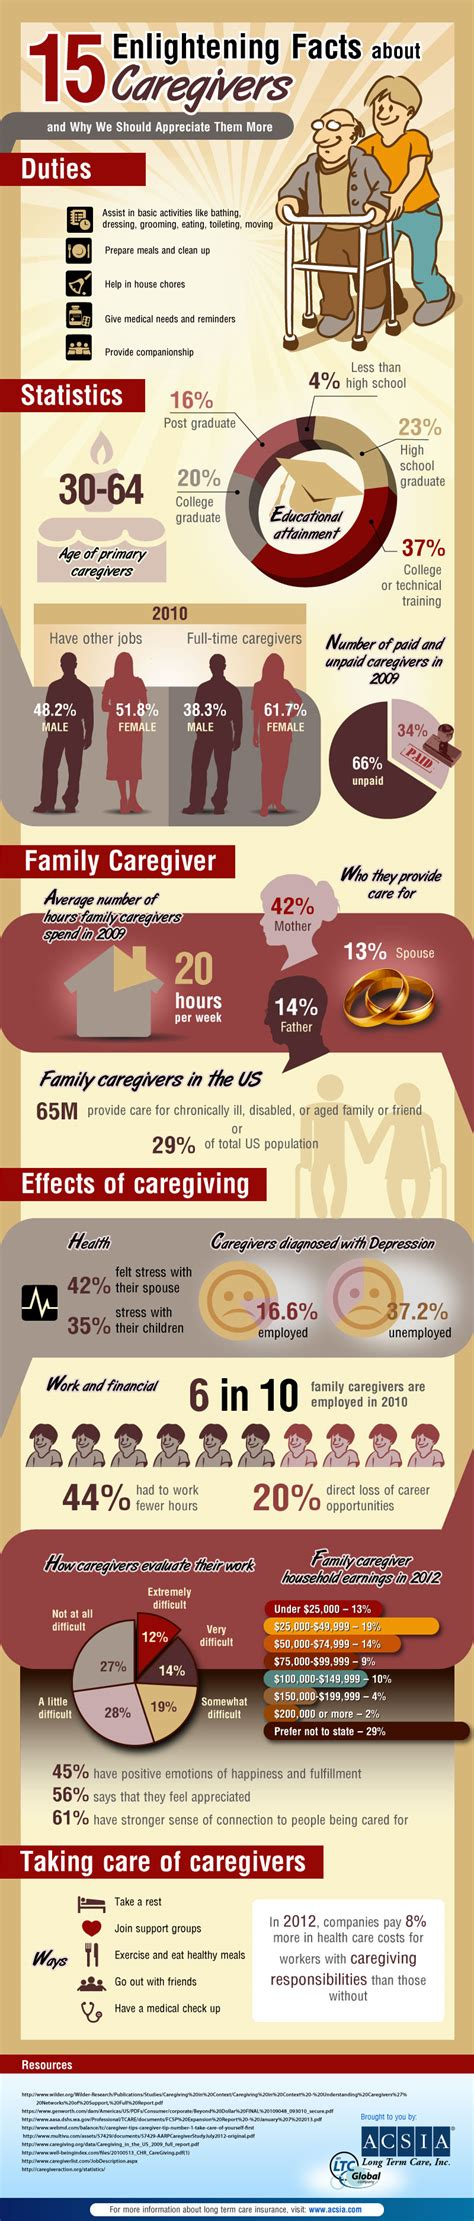 caregiver duties and other enlightening facts about caregivers infographic